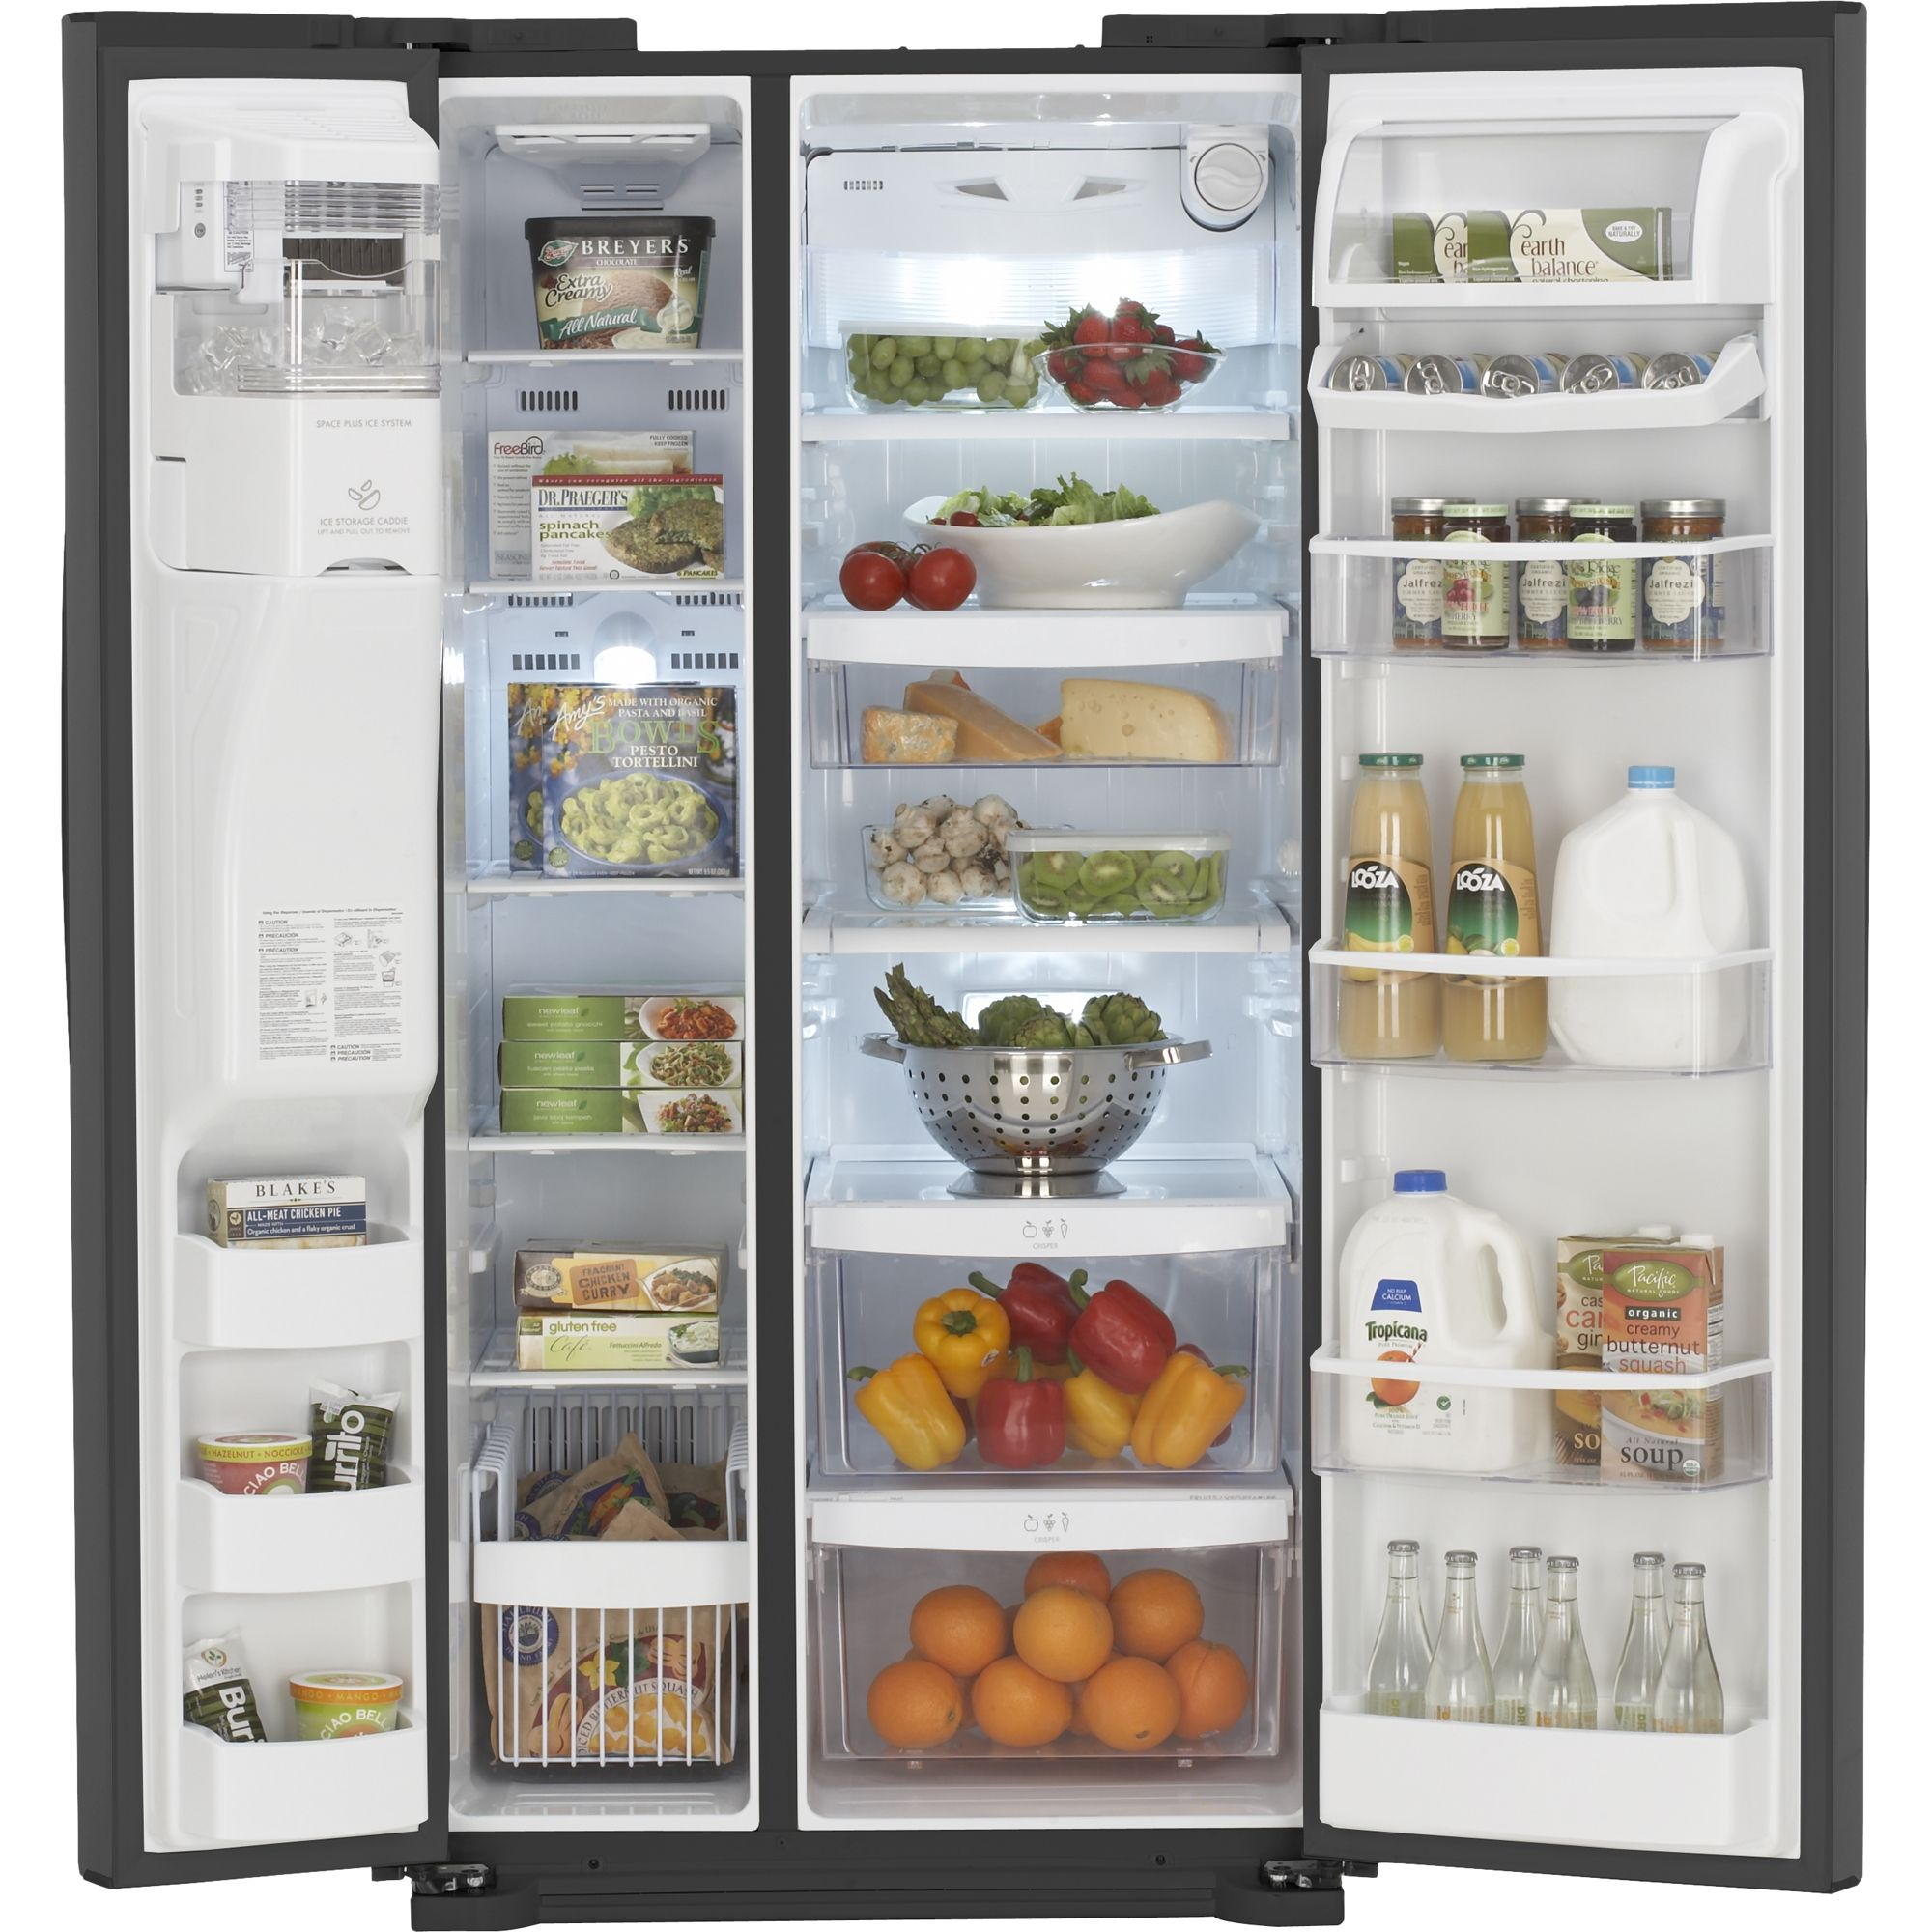 Kenmore Elite 23.3 cu. ft. Side-by-Side Refrigerator